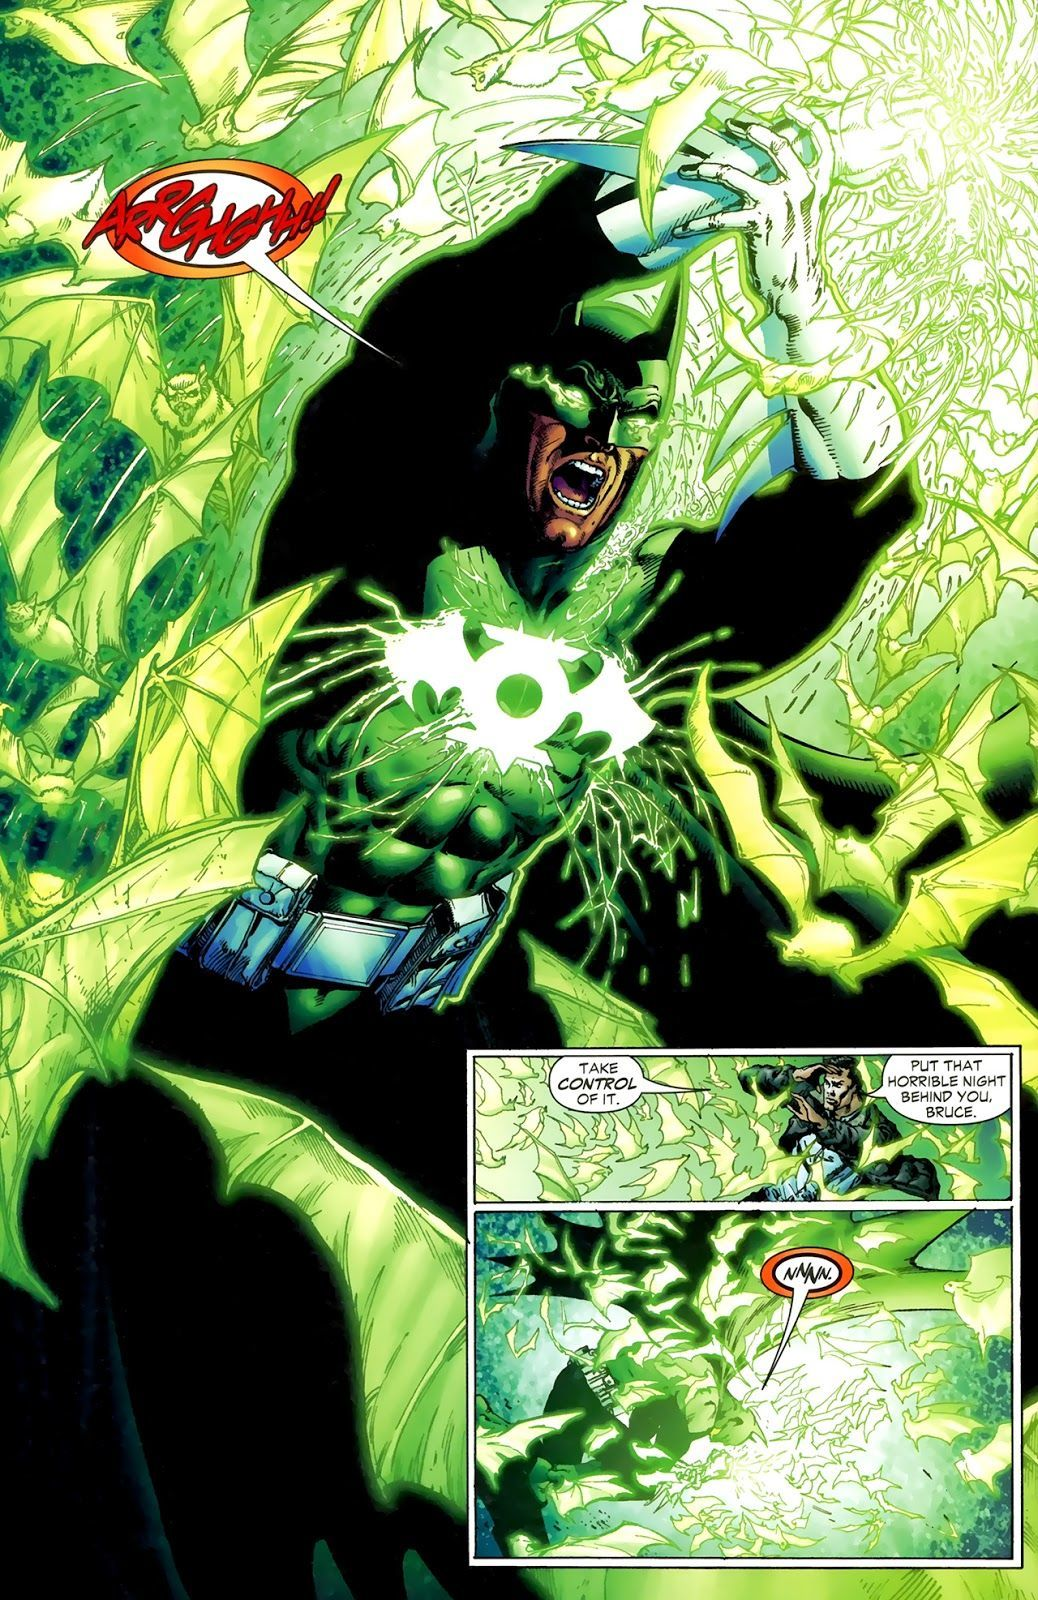 Green Lantern #9 (Writer: Geoff Johns, Artists: Ethan Van Sciver, Prentis Rollins)